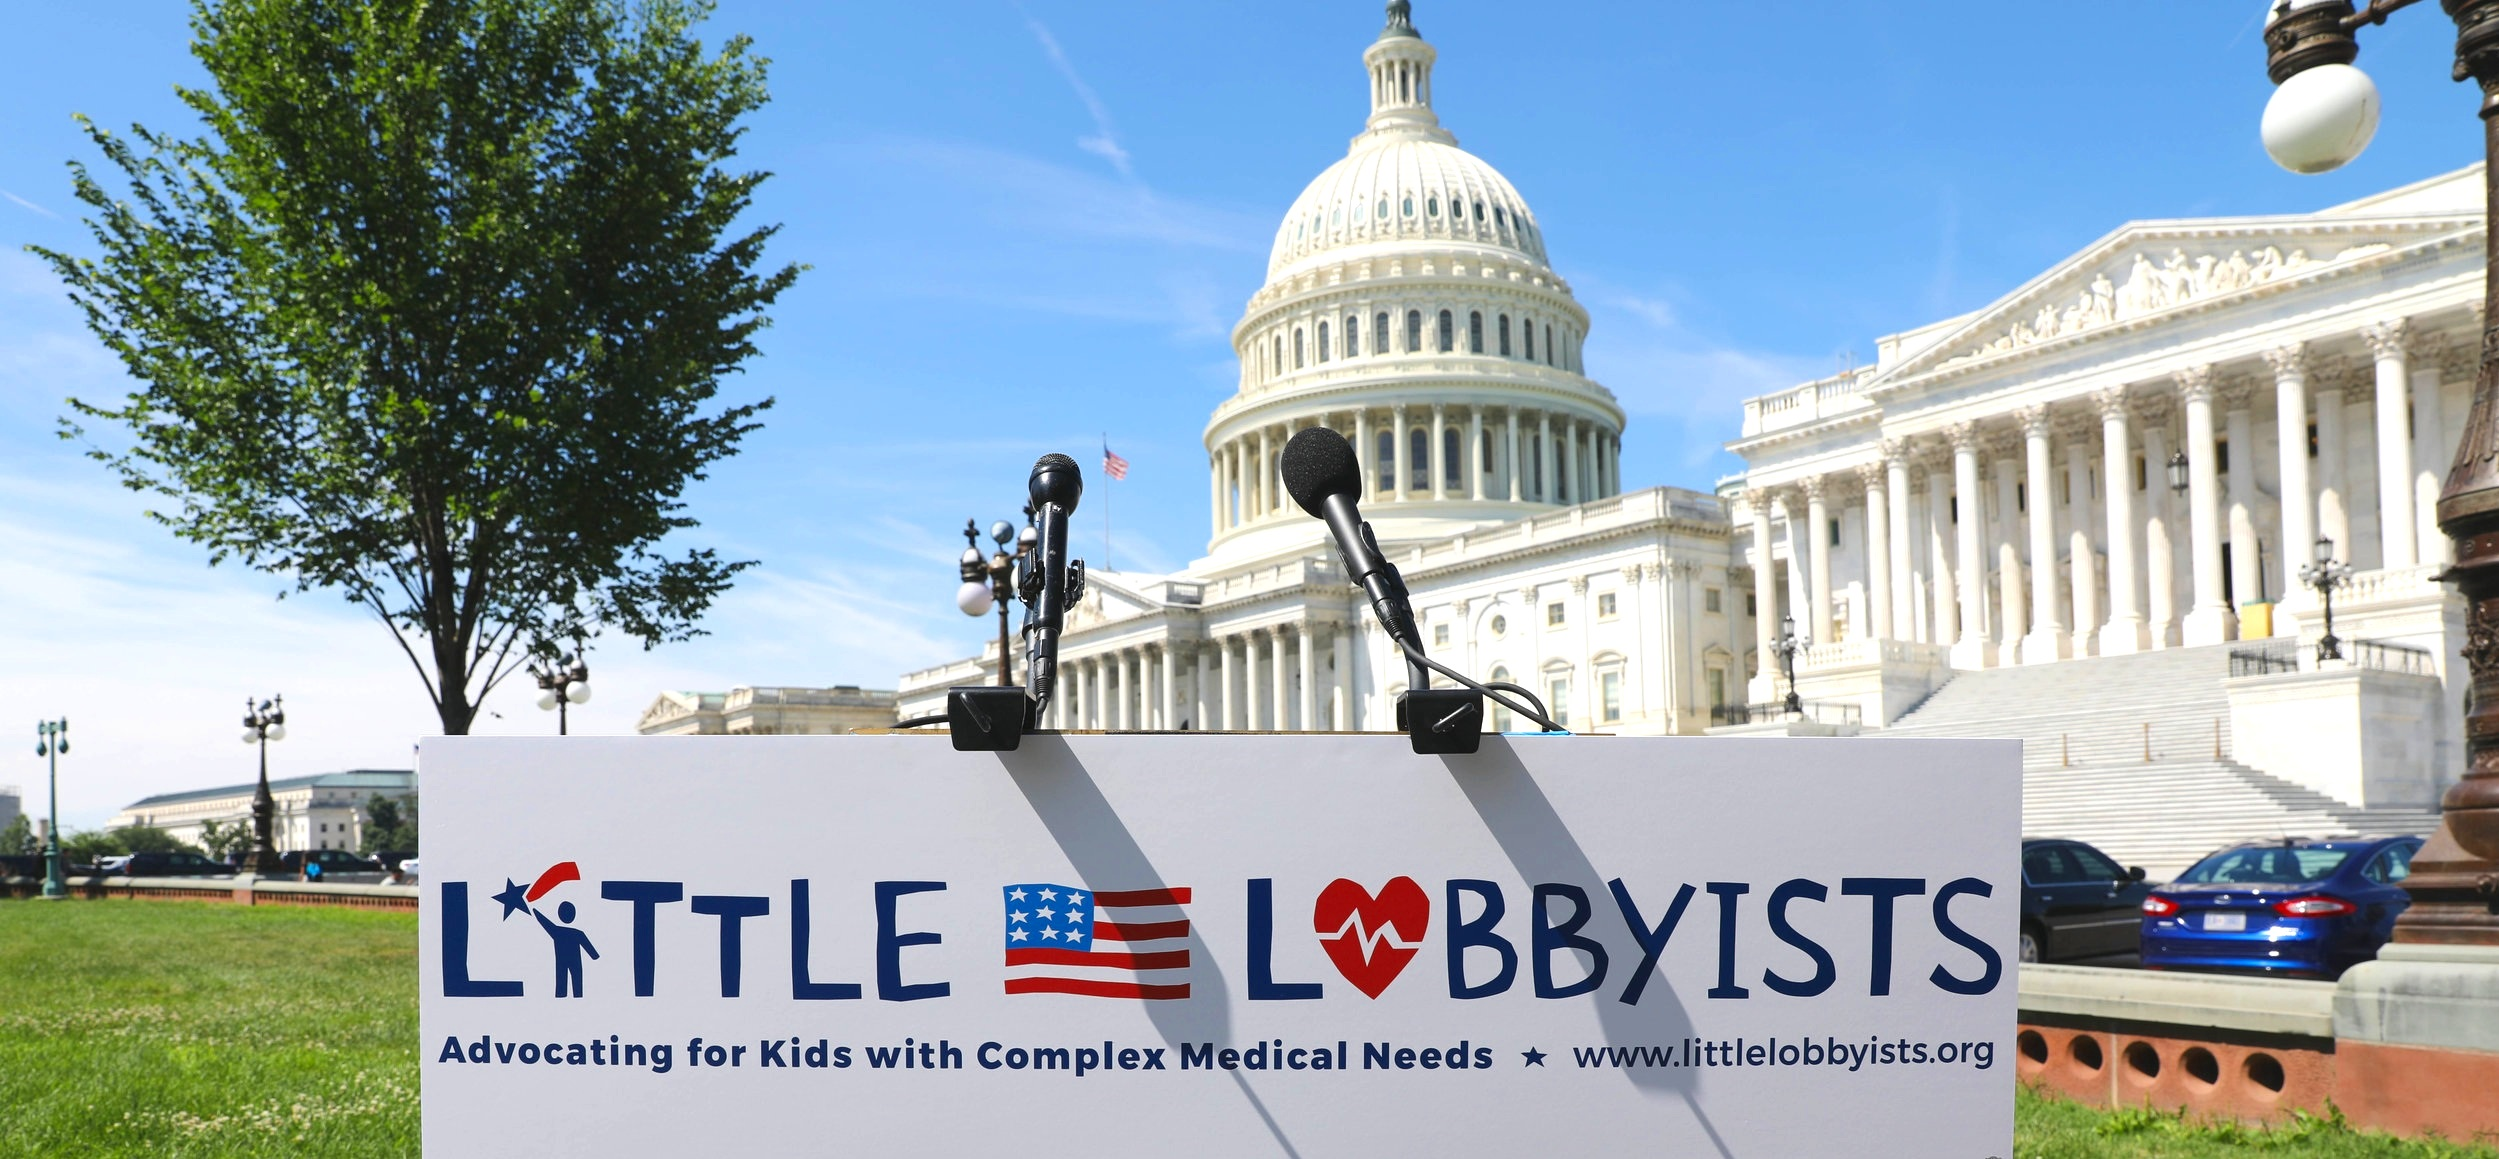 Podium with Little Lobbyists logo in front of the U.S. Capitol